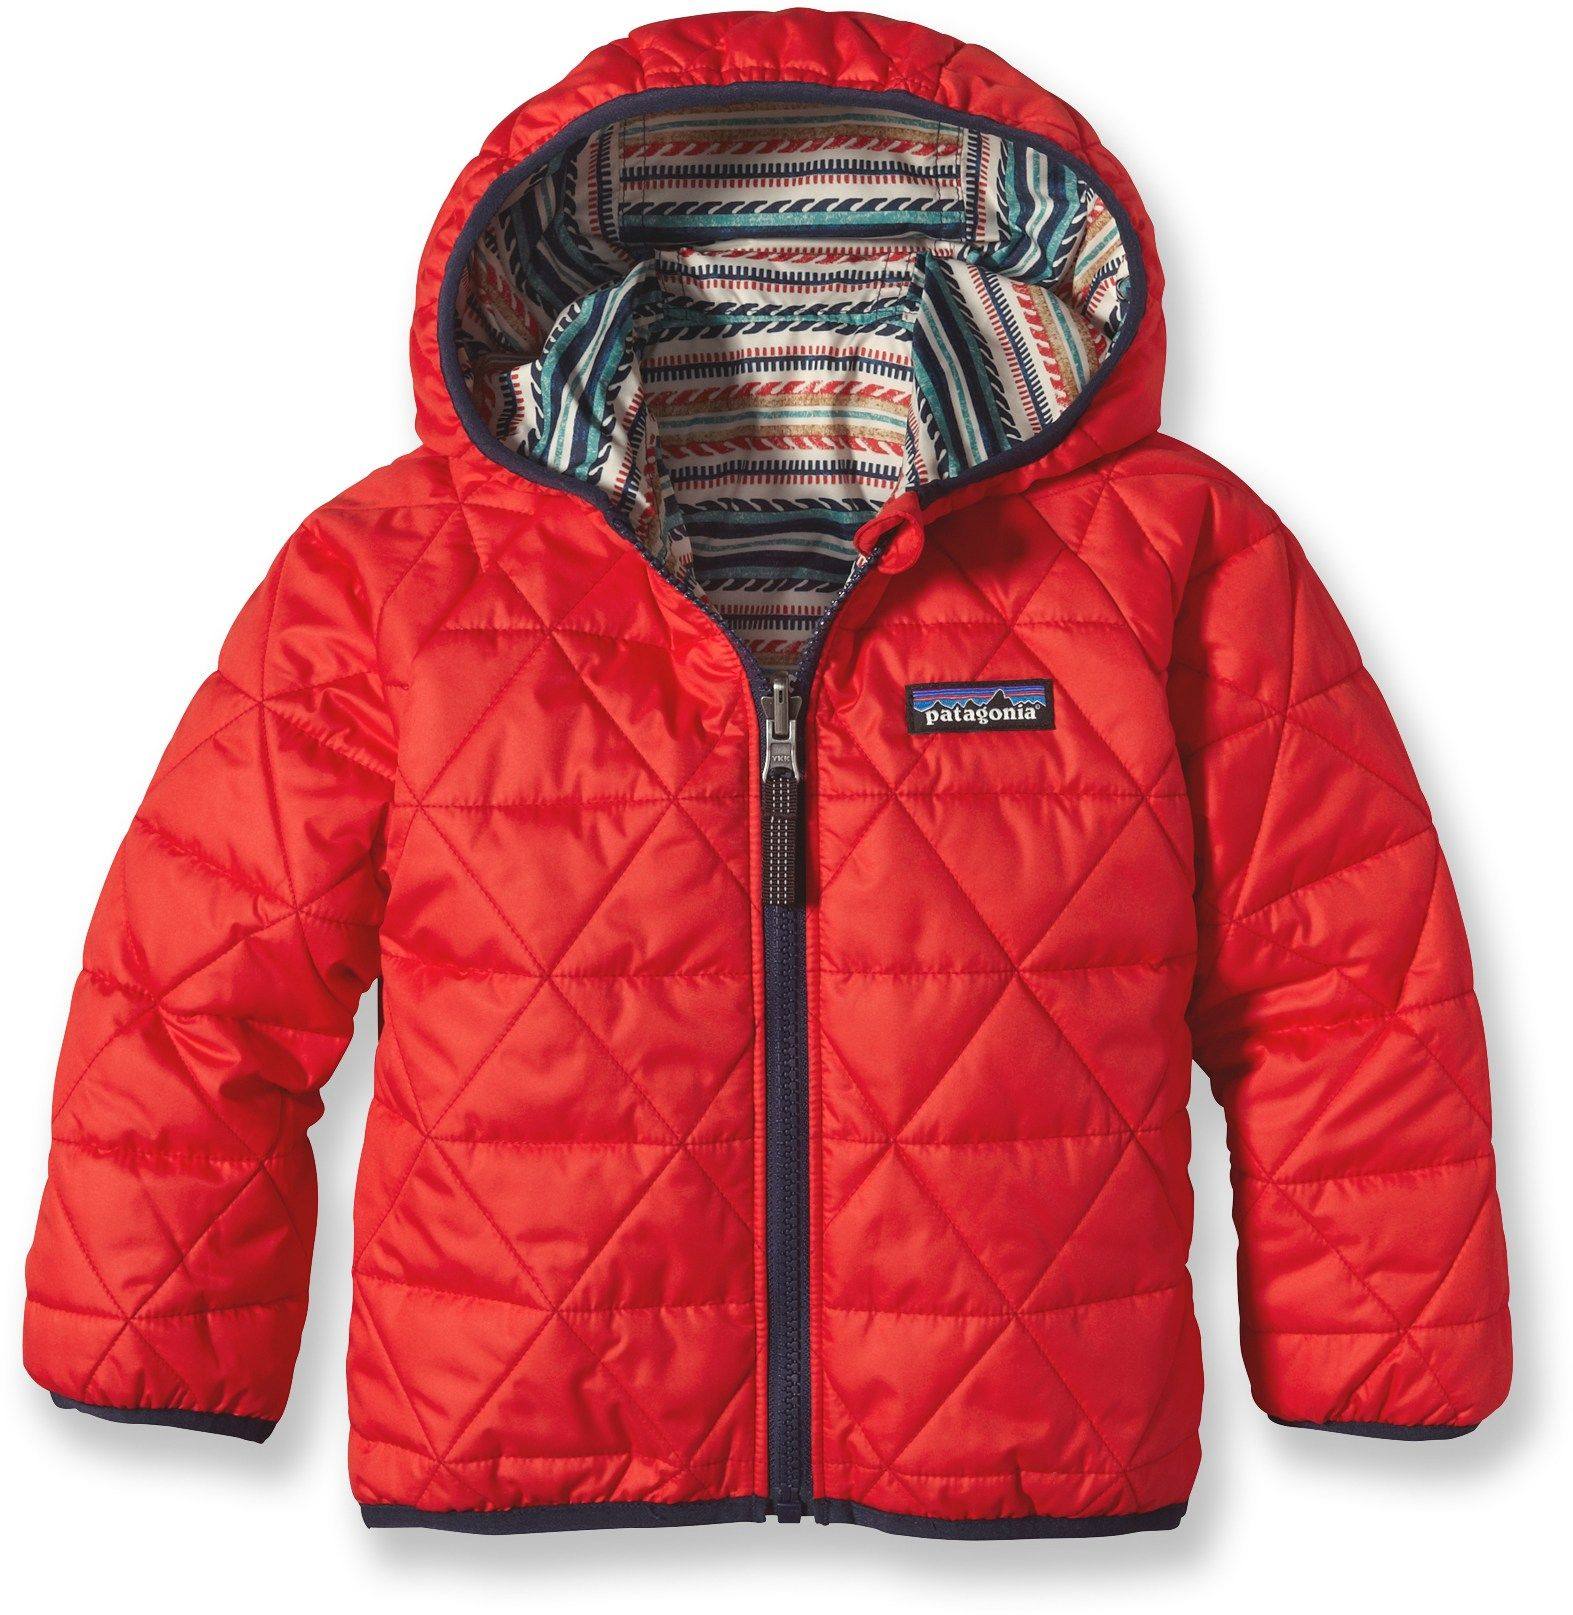 174e7b04d Patagonia Baby Reversible Puff-Ball Insulated Jacket - Infant/Toddler Boys'  - REI.com